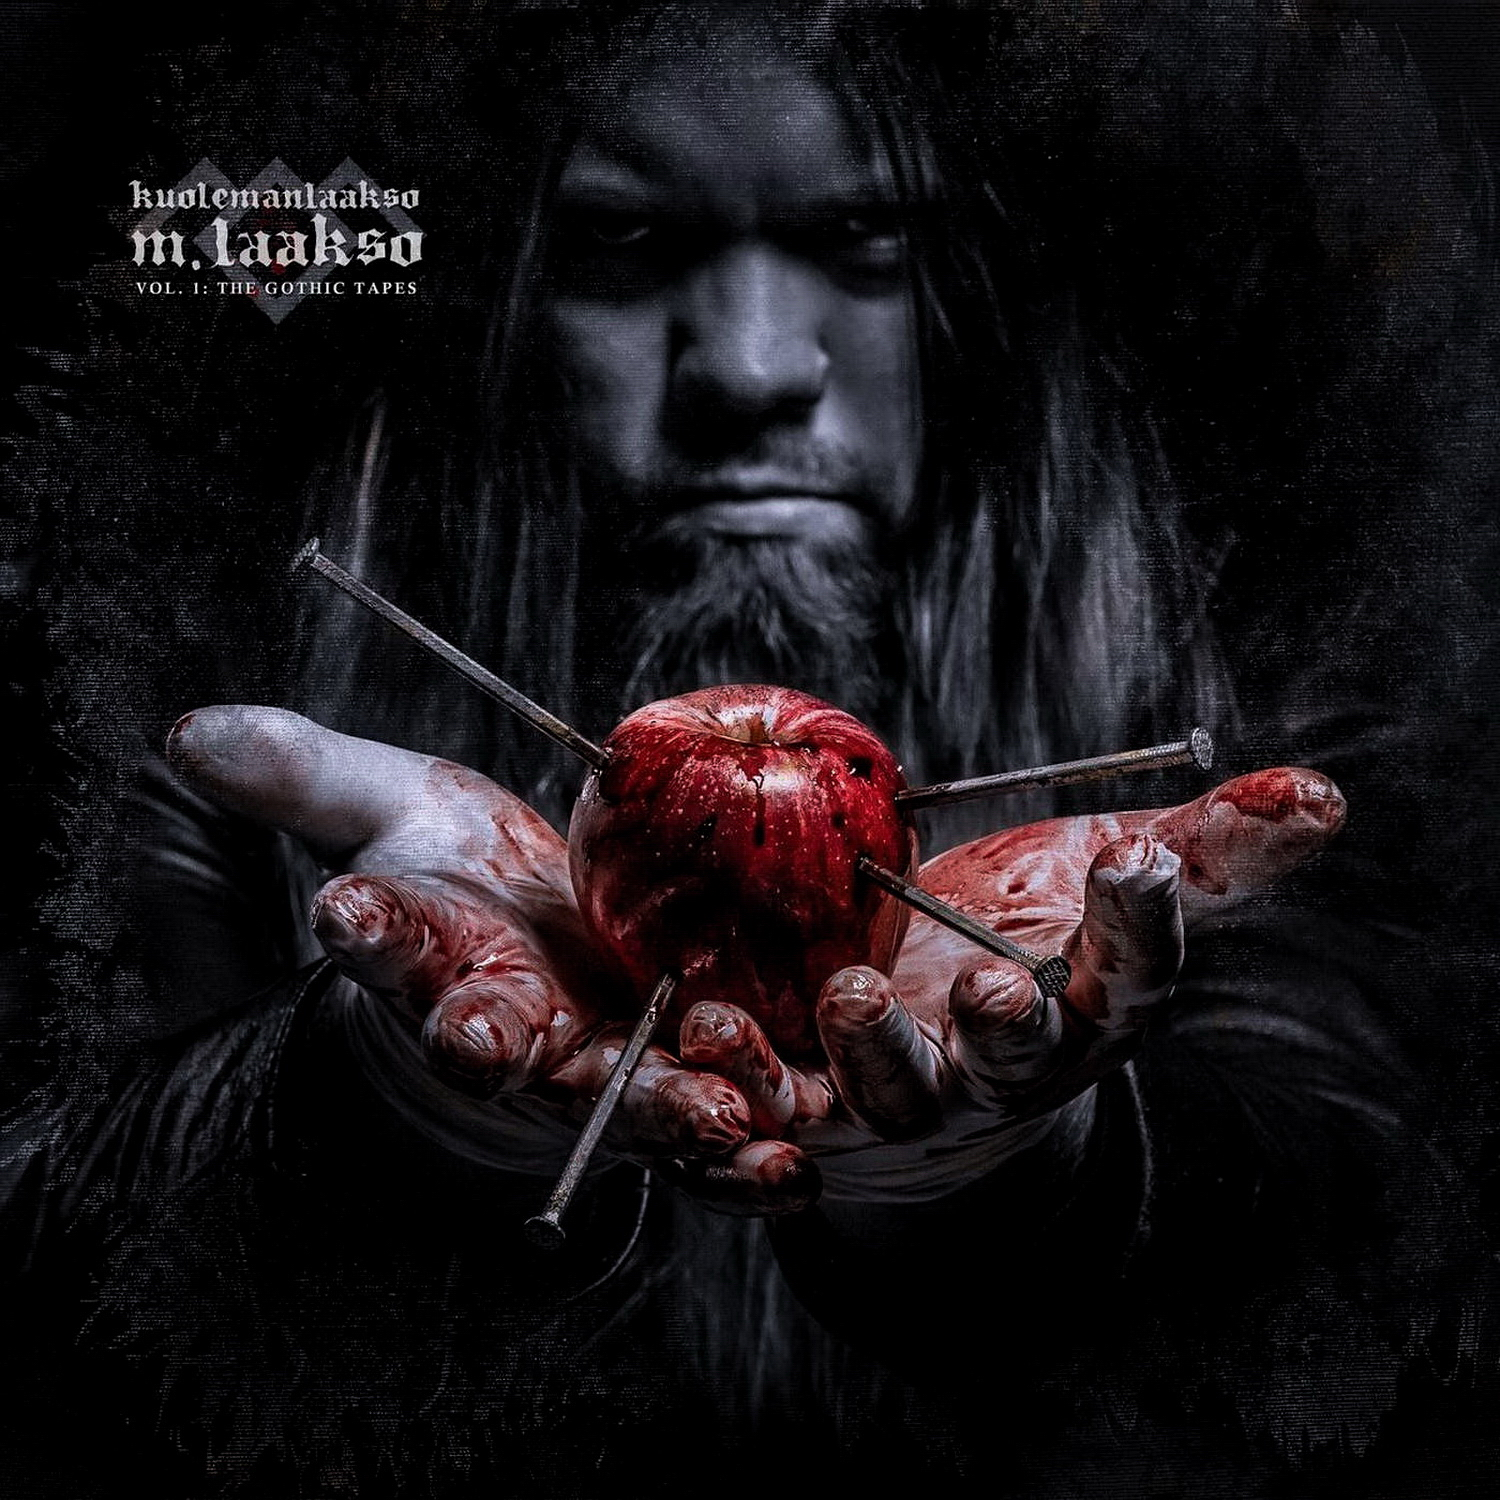 Kuolemanlaakso - M. Laakso - Vol. 1: The Gothic Tapes - 2016